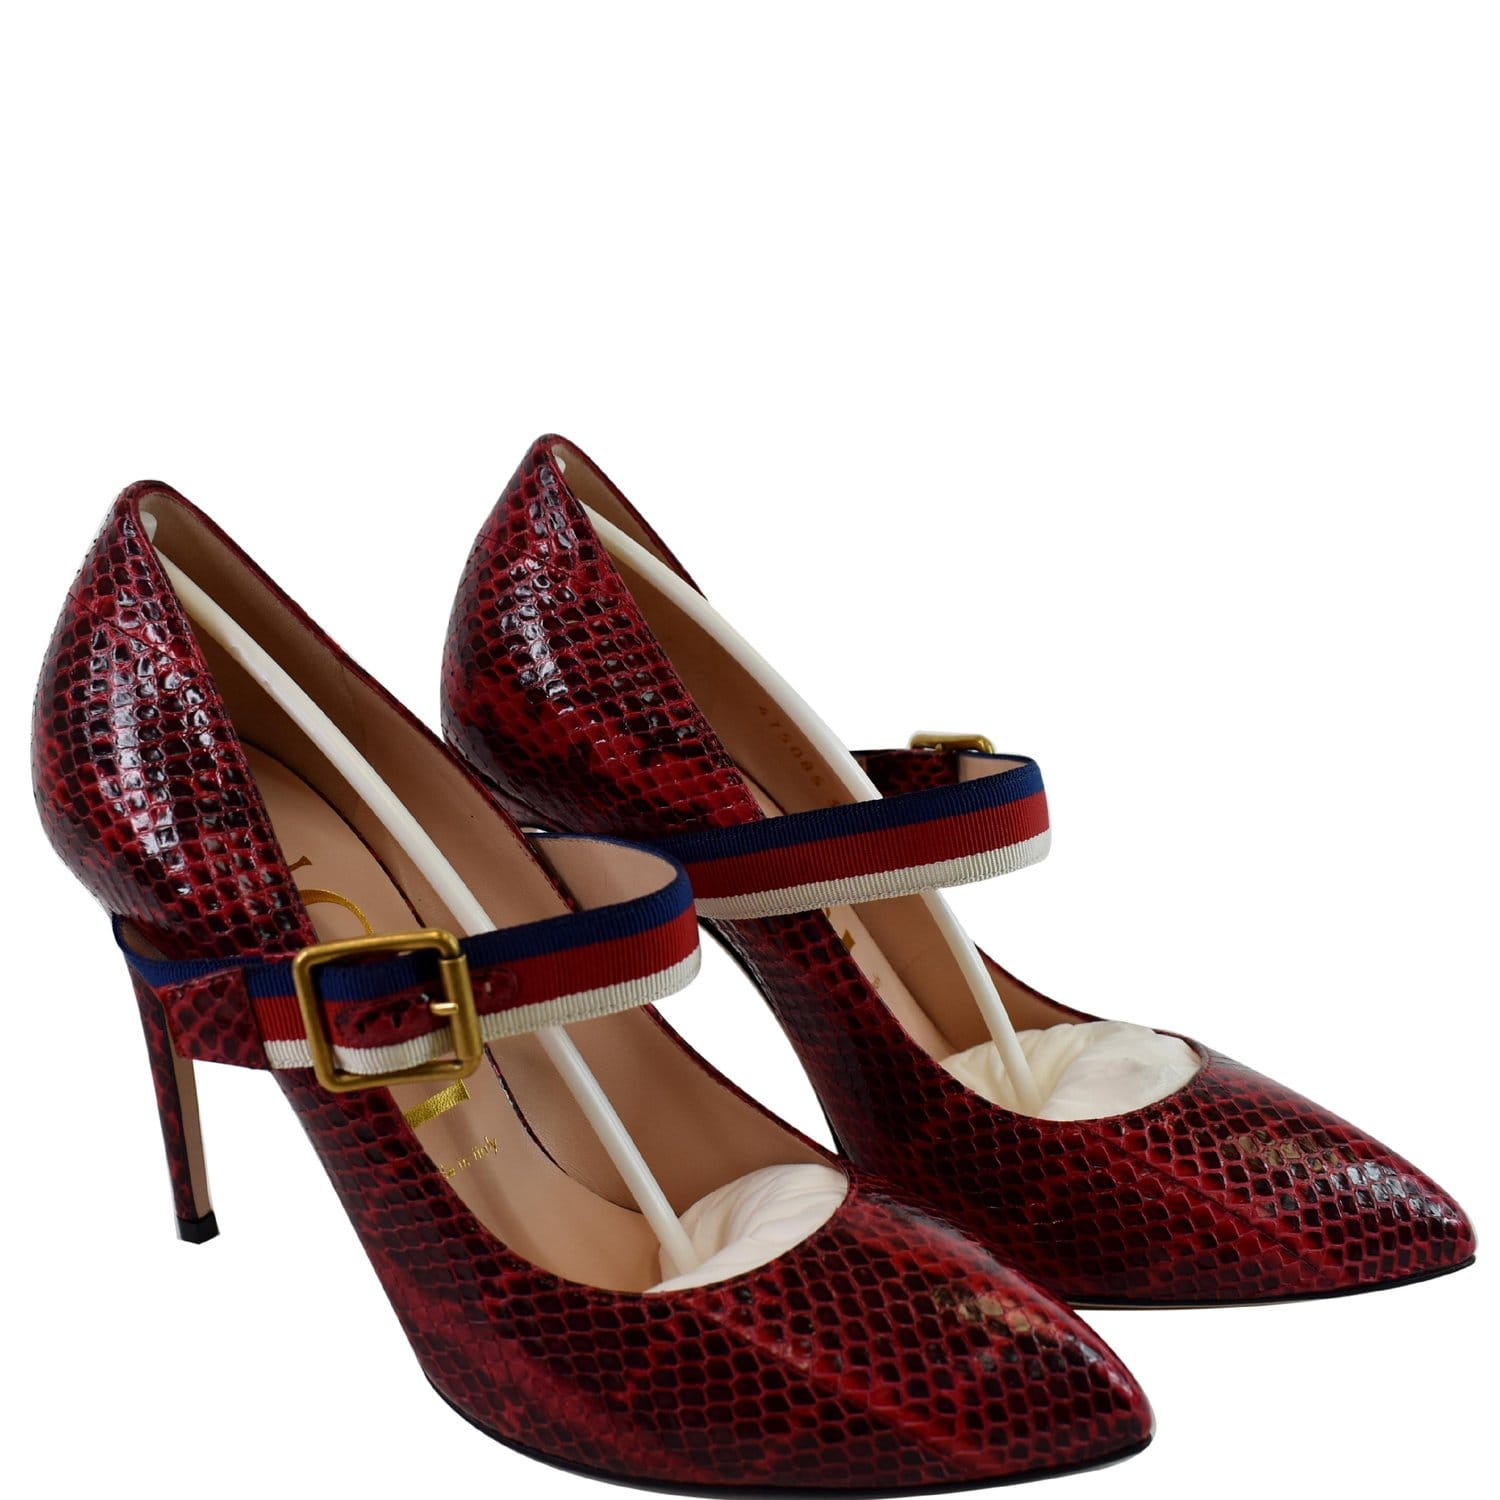 GUCCI Sylvie Python Leather Pumps Red Size 39